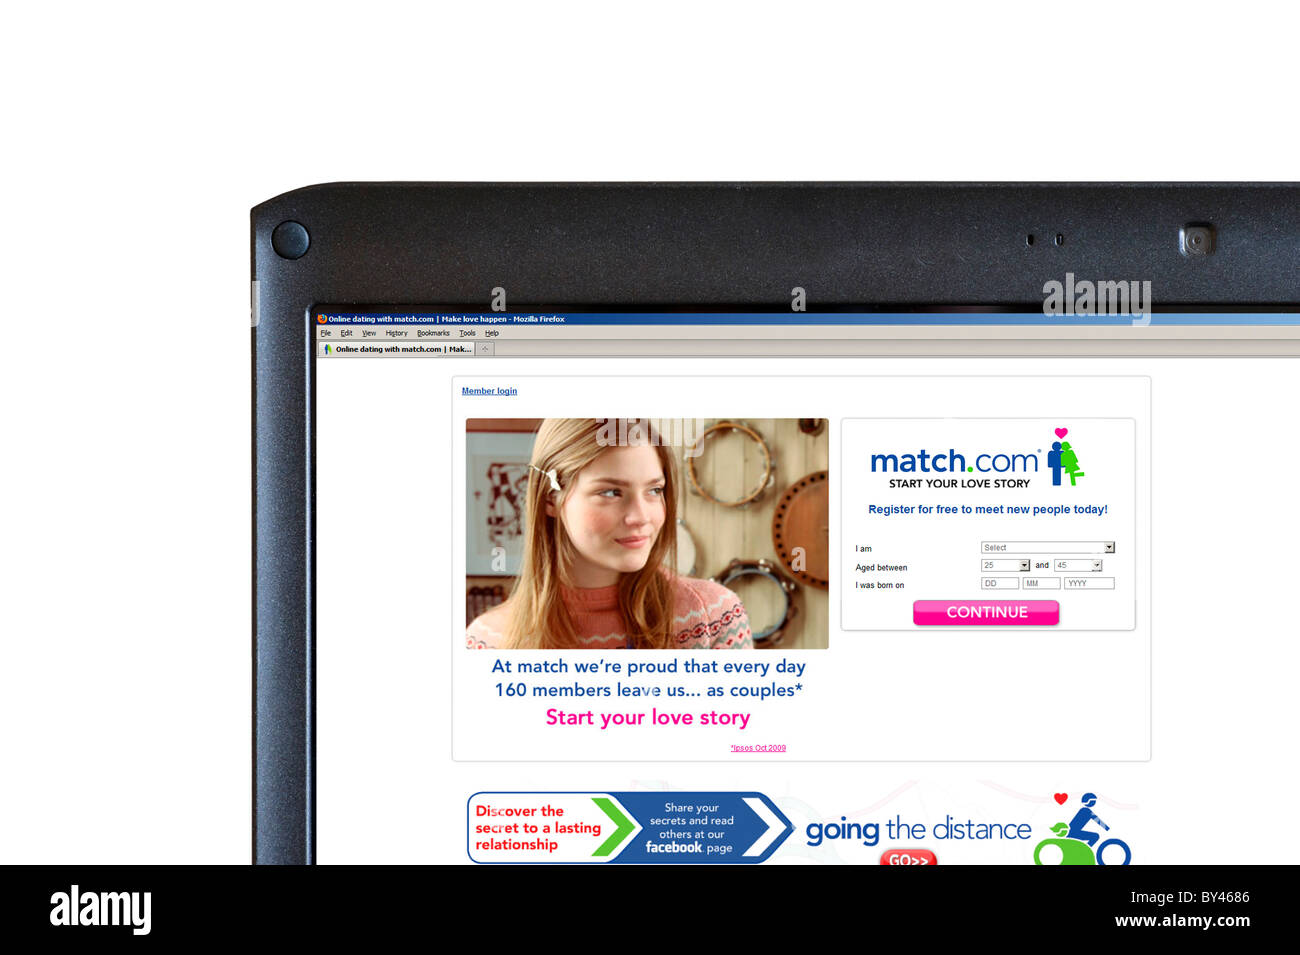 Online dating with match.com, UK Stock Photo